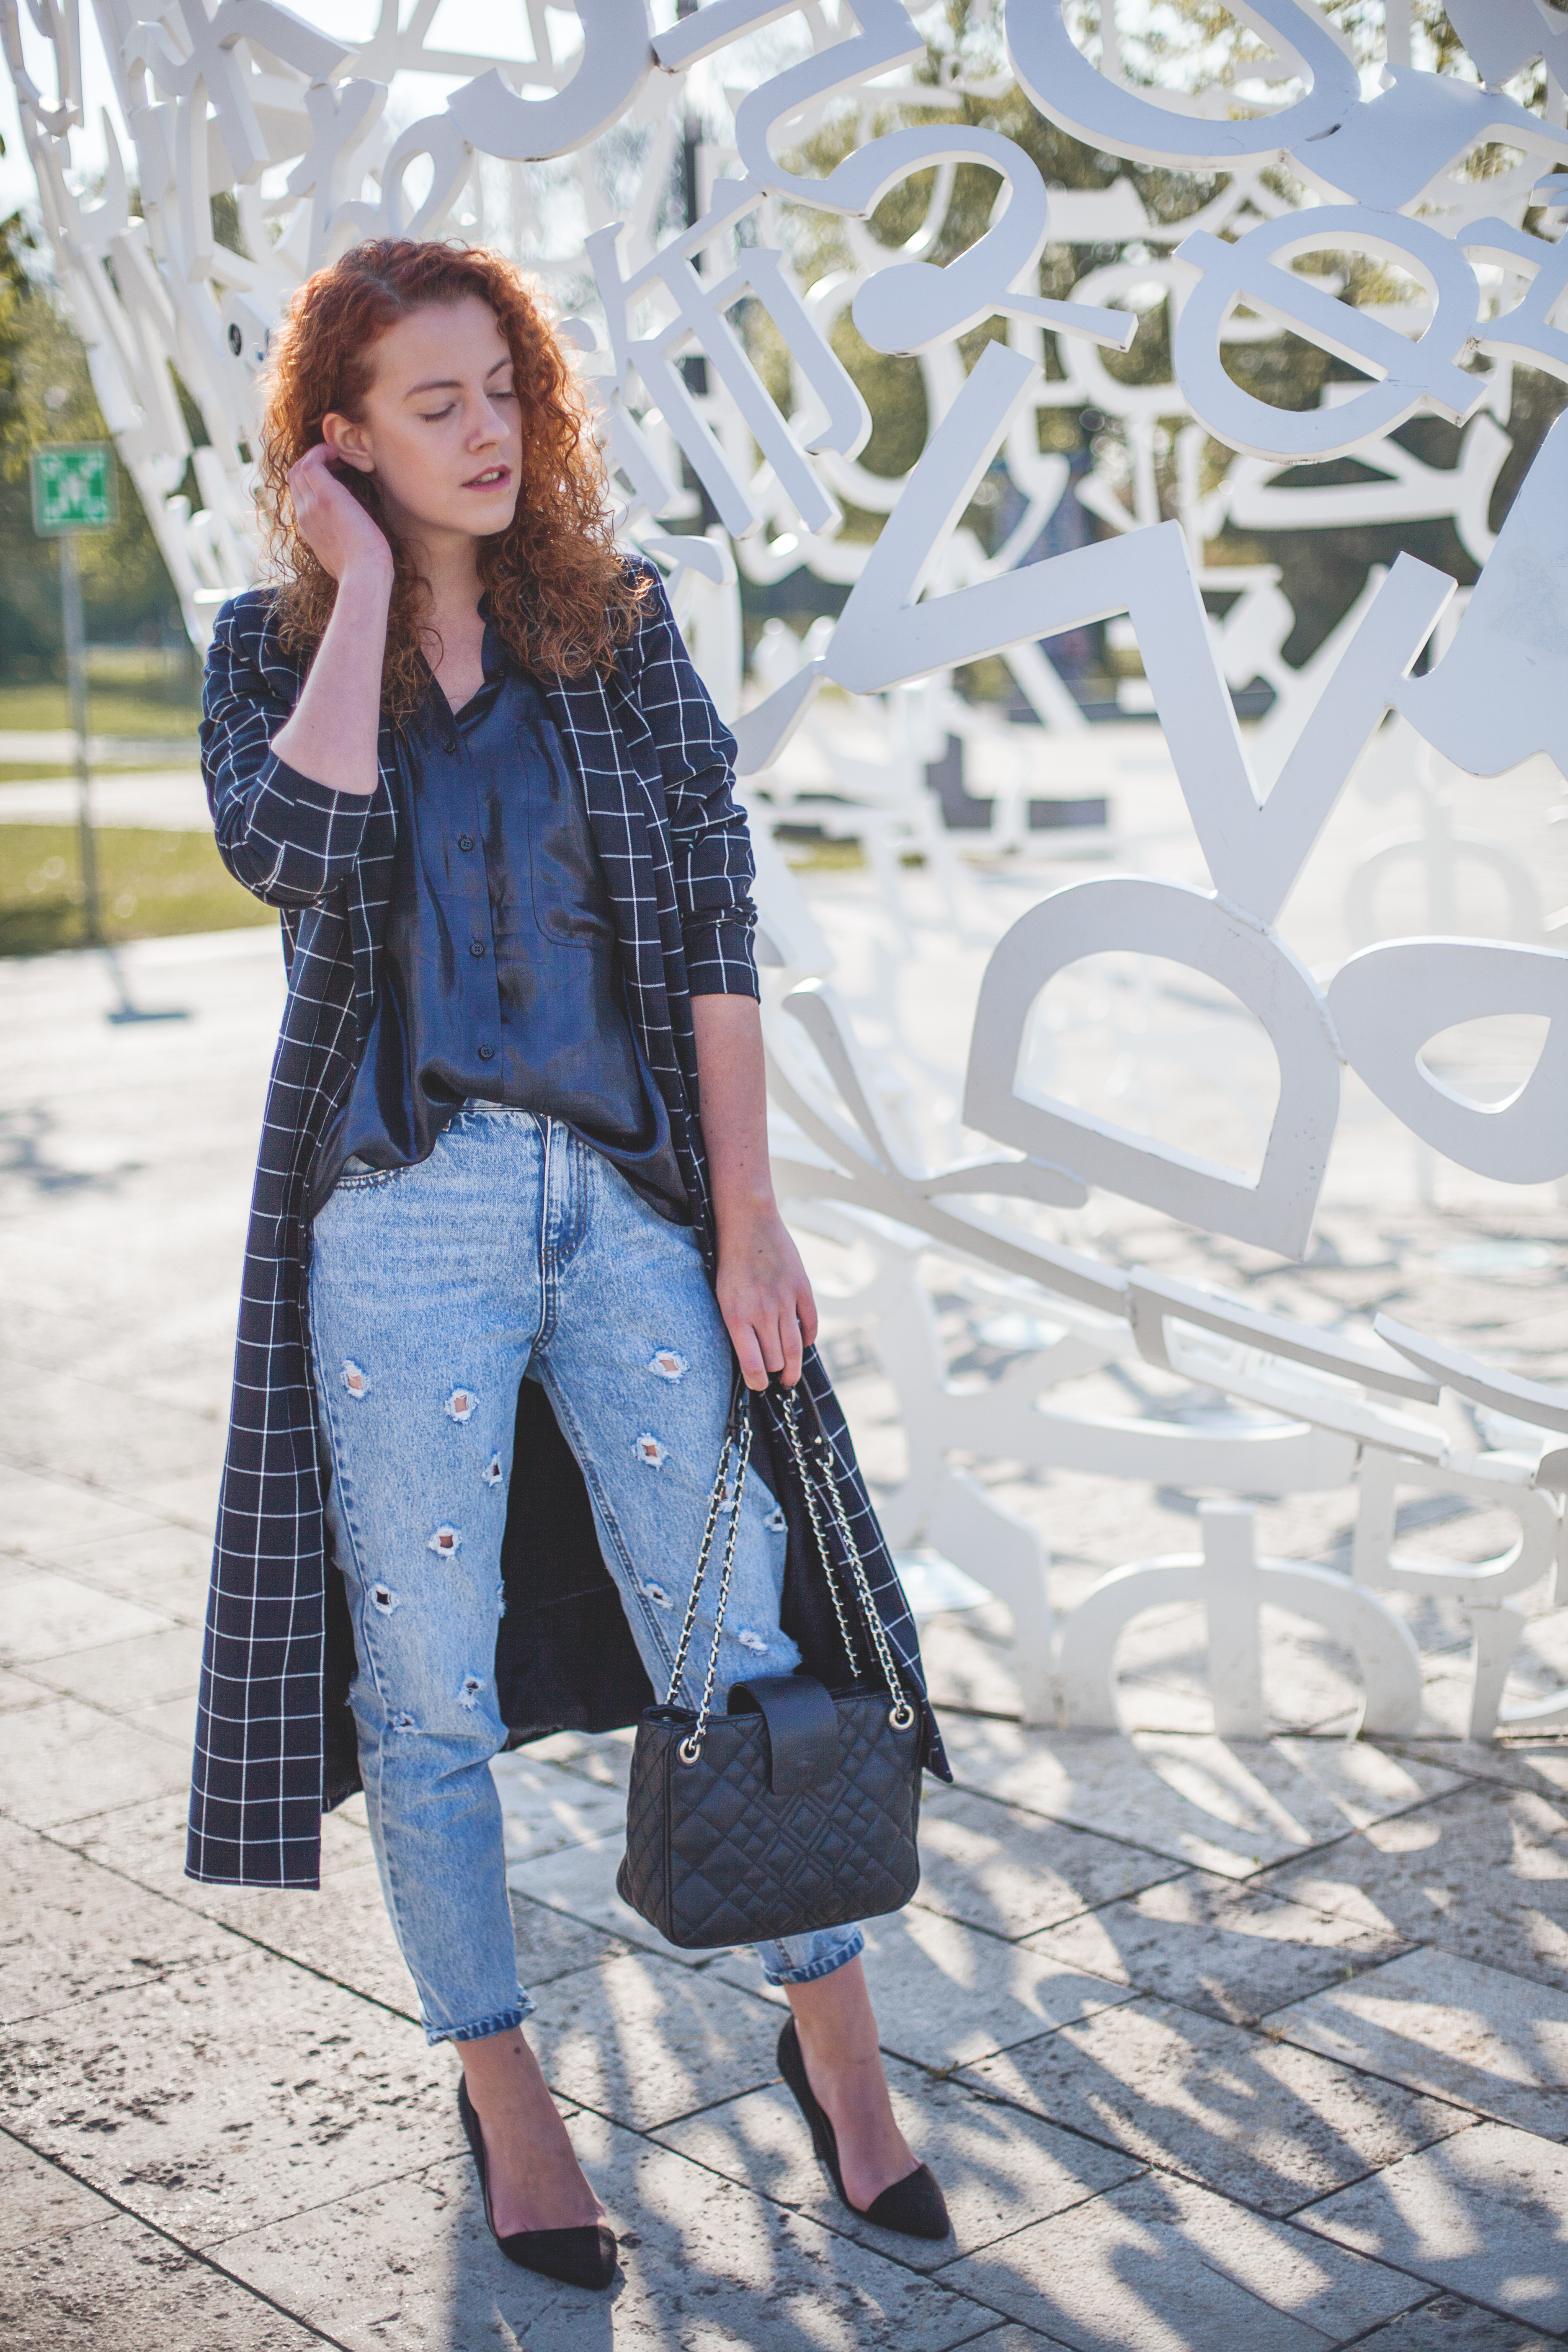 outfit fashionblogger modeblogger mode blog frankfurt berlin thecurledgirl the curled girl deliah alexandra denim ripped mom jeans oversize edgy ootd streetstyle